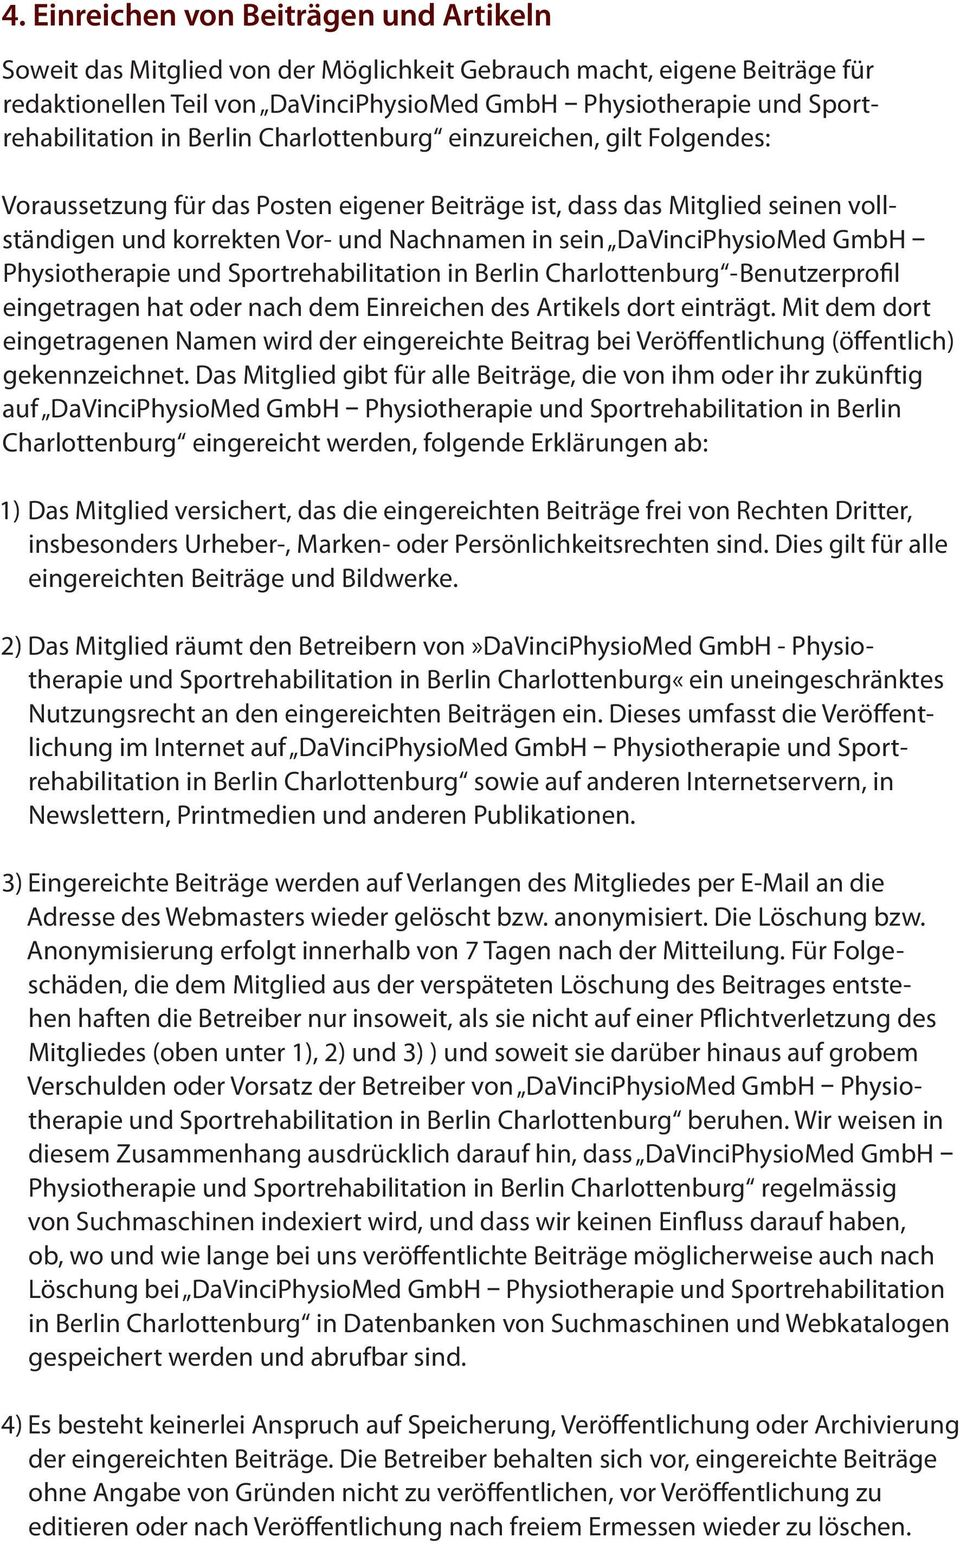 in sein DaVinciPhysioMed GmbH Physiotherapie und Sportrehabilitation in Berlin Charlottenburg -Benutzerprofil eingetragen hat oder nach dem Einreichen des Artikels dort einträgt.